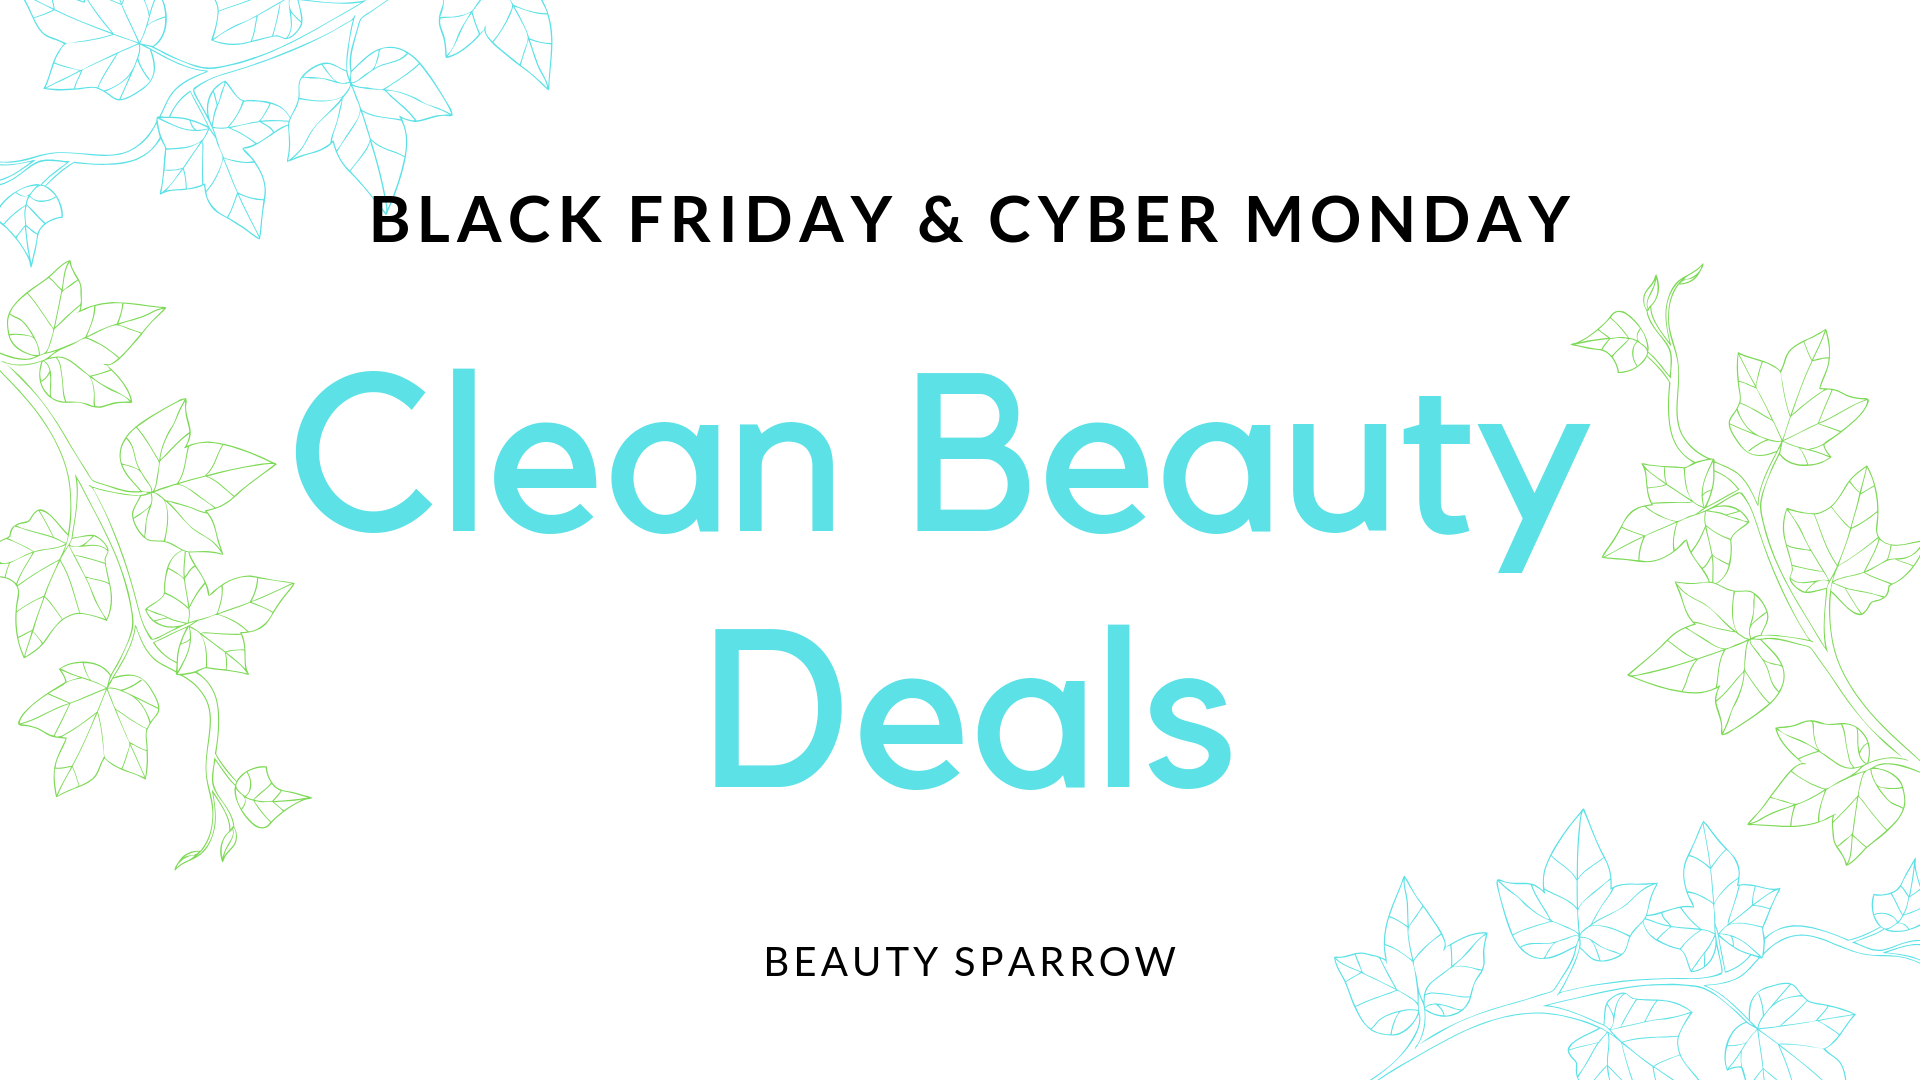 6e9b5904bc2 Be sure to check back often for the latest Black Friday and Cyber Monday  clean beauty deals. Follow my Facebook page Clean Beauty Deals for an  inside look ...